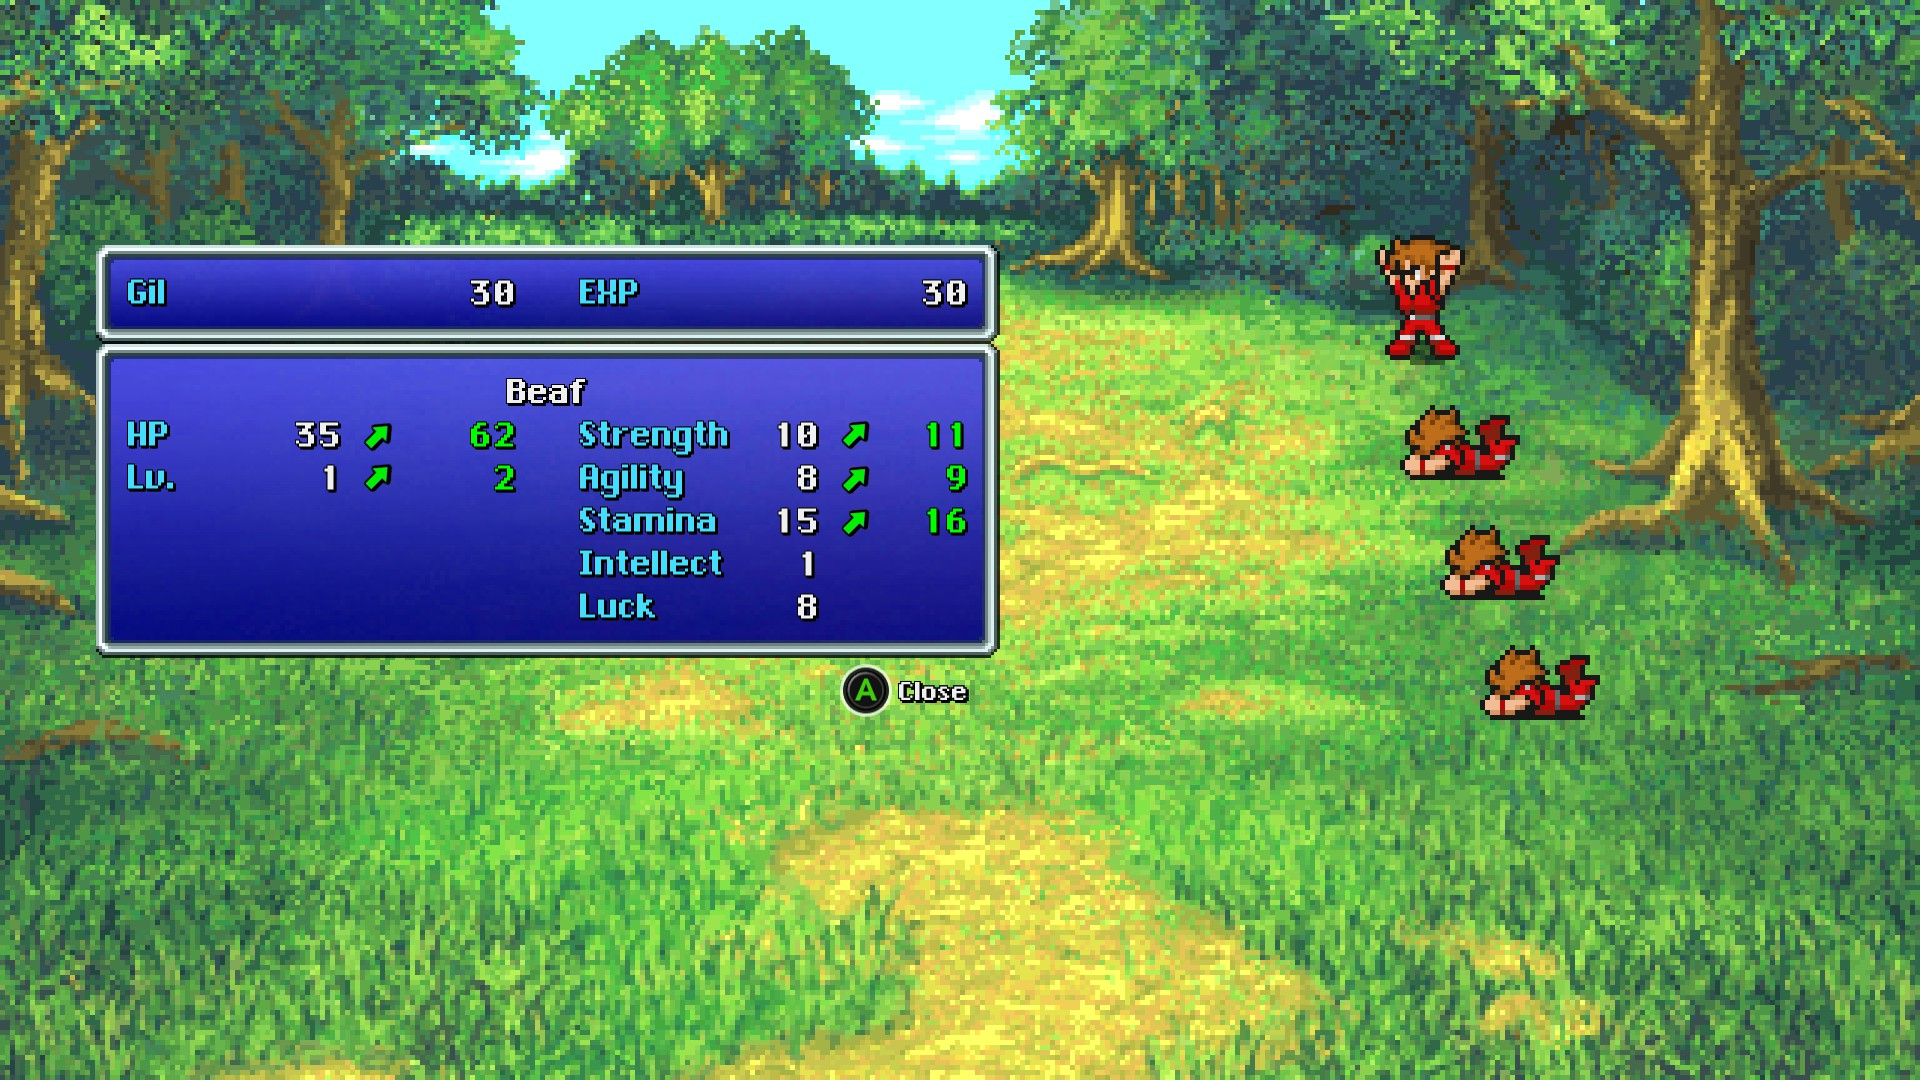 FINAL FANTASY IV - How to Replace Font for Pixel Remaster Games - Enjoy the SNES FF6 Font! - FA30422